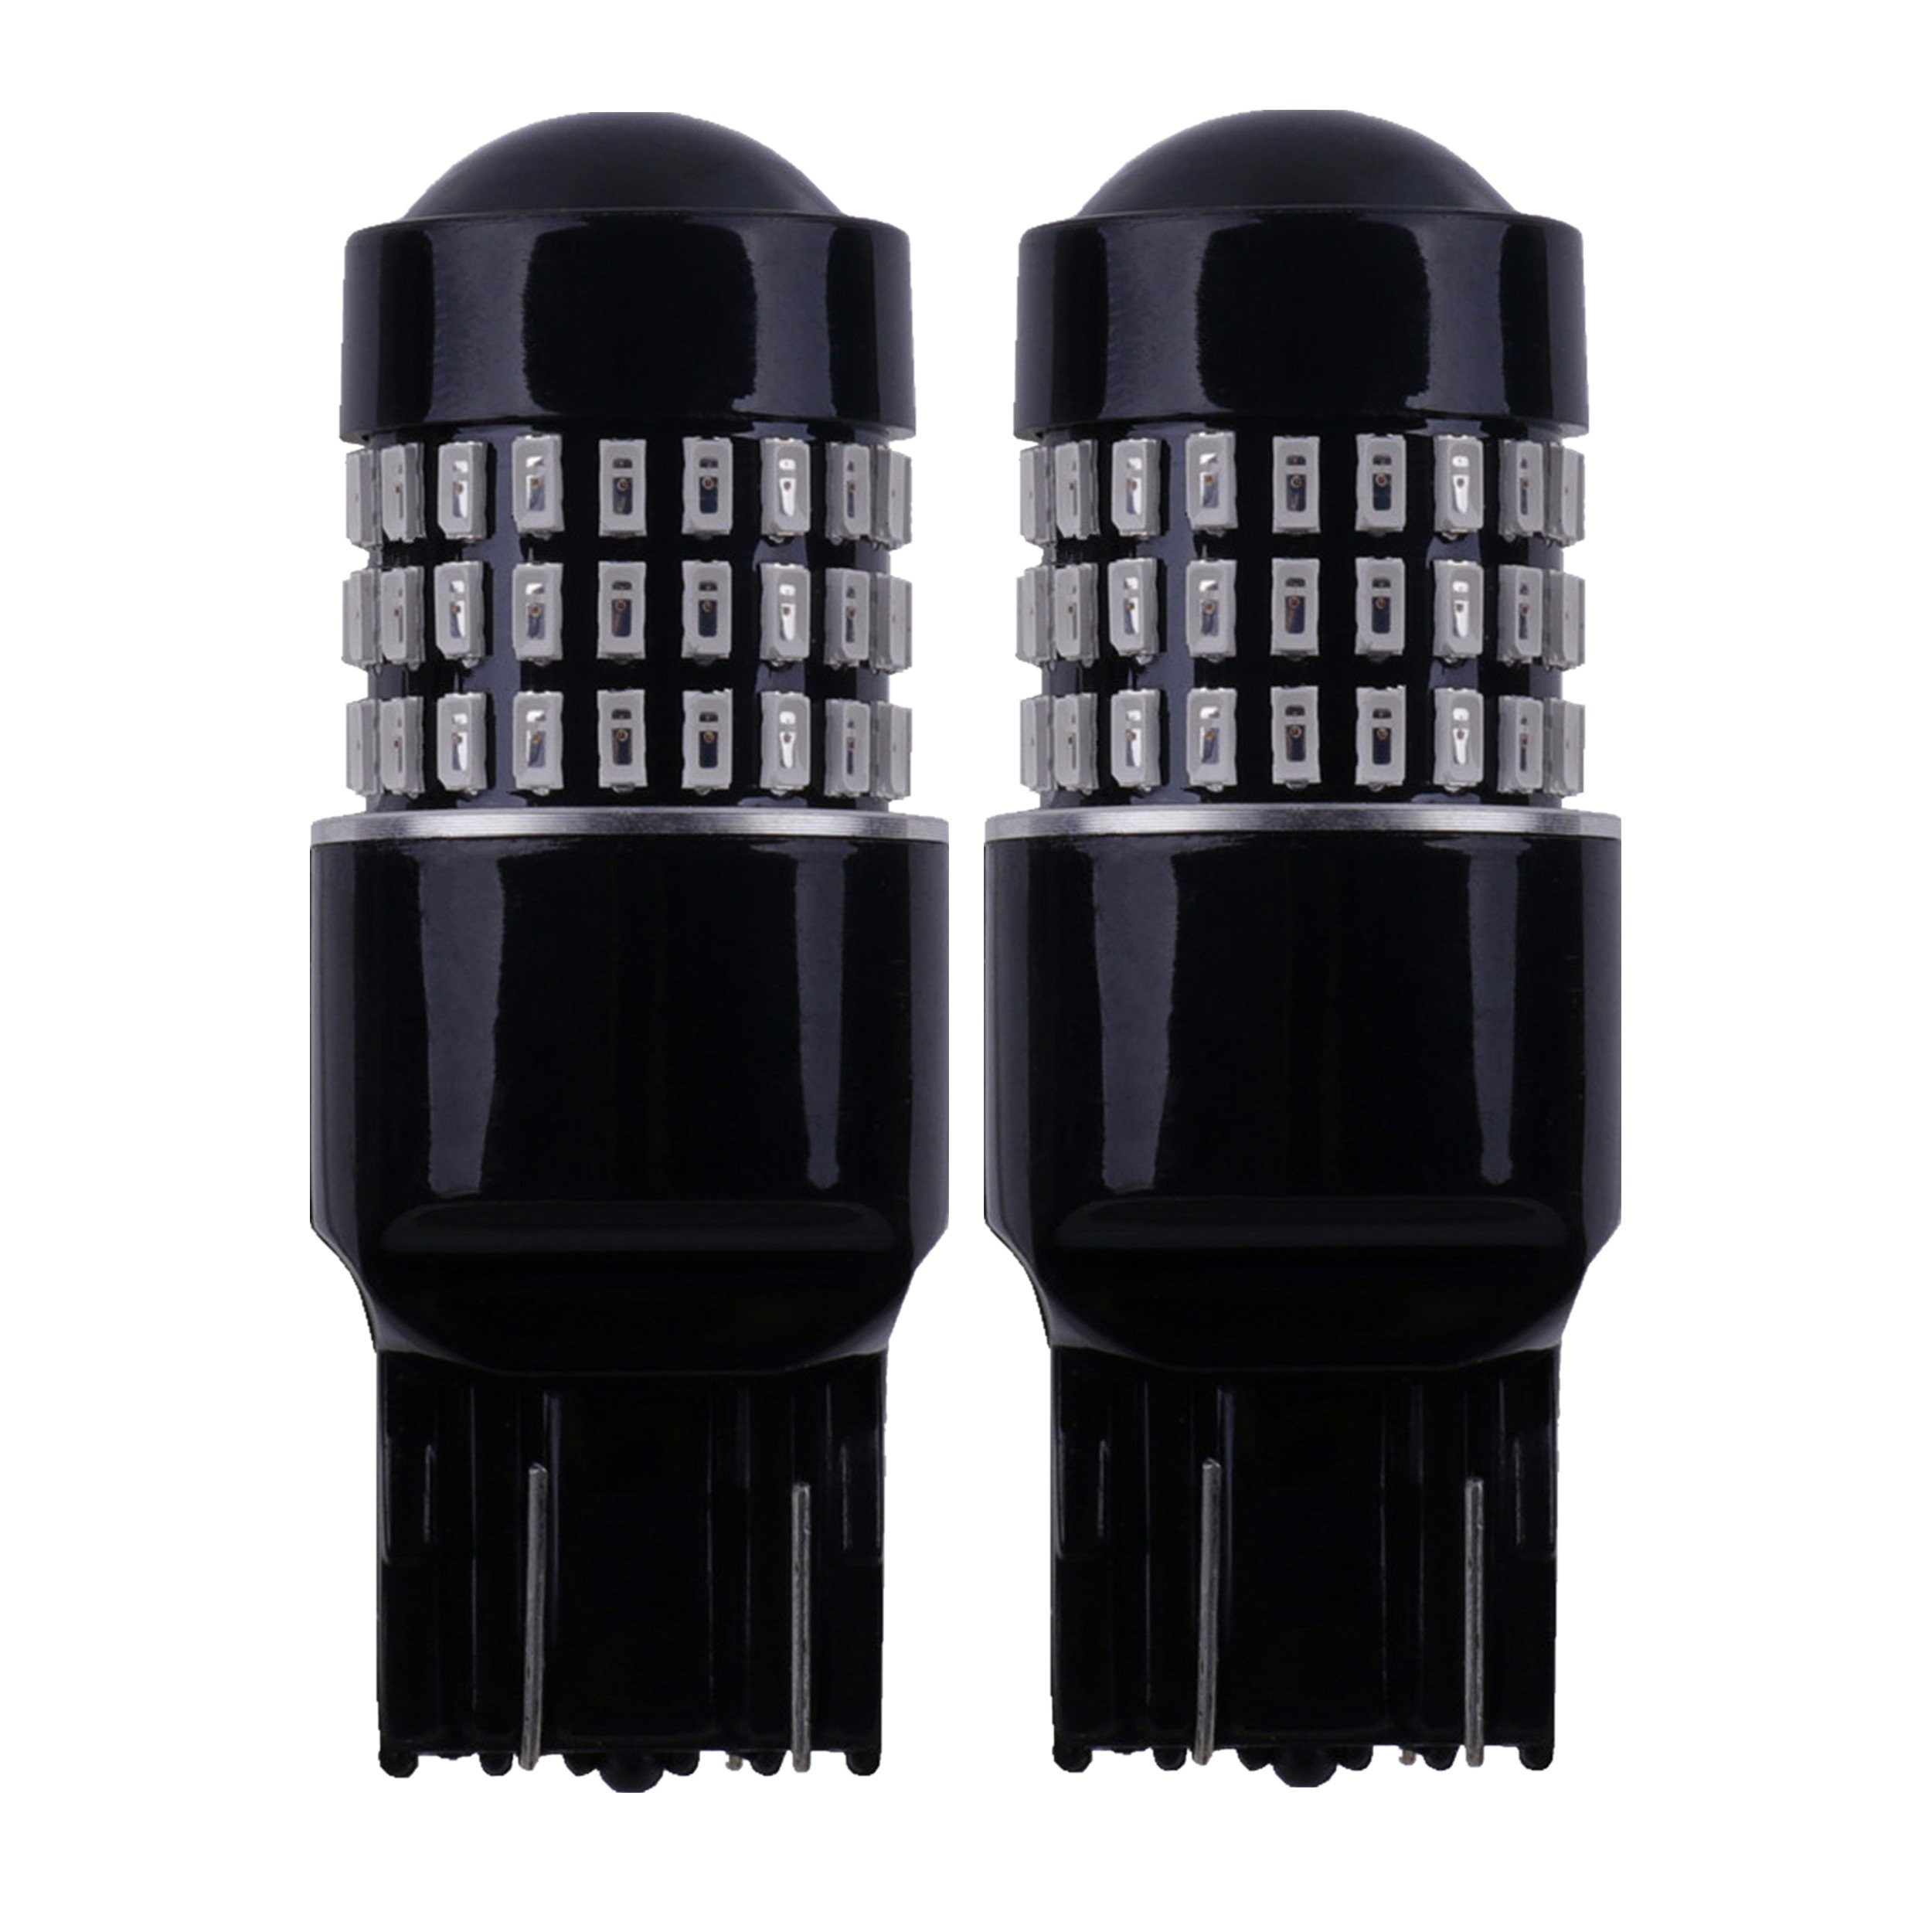 LABBYWAY 2 Pcs Super Bright Low Power 3014 78-EX Chipsets DC 9-30V,7443 7440 992 T20 LED Used For Brake Lights, Tail Lights,Red